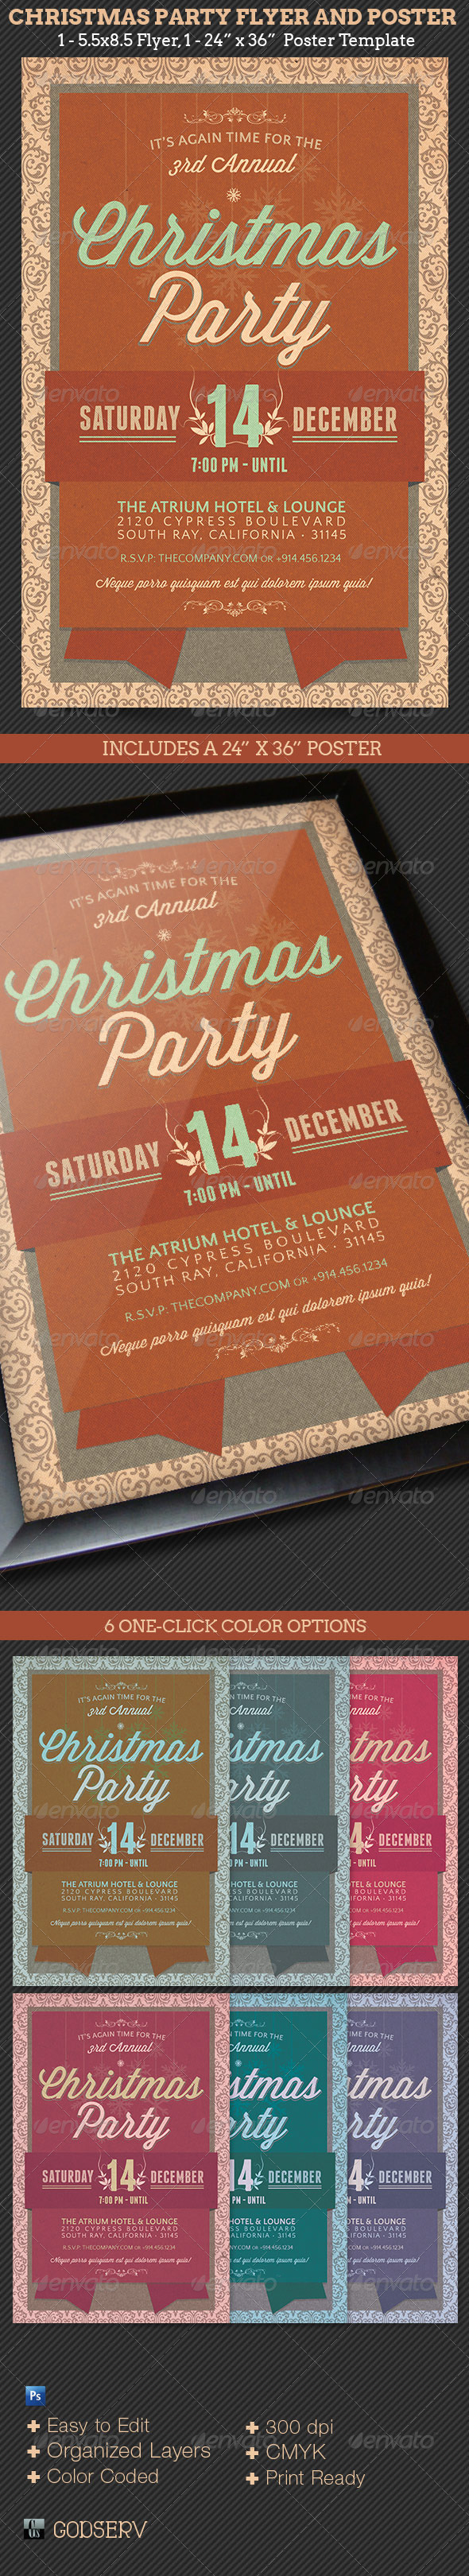 A Christmas Party Flyer and Poster Template - Holidays Events